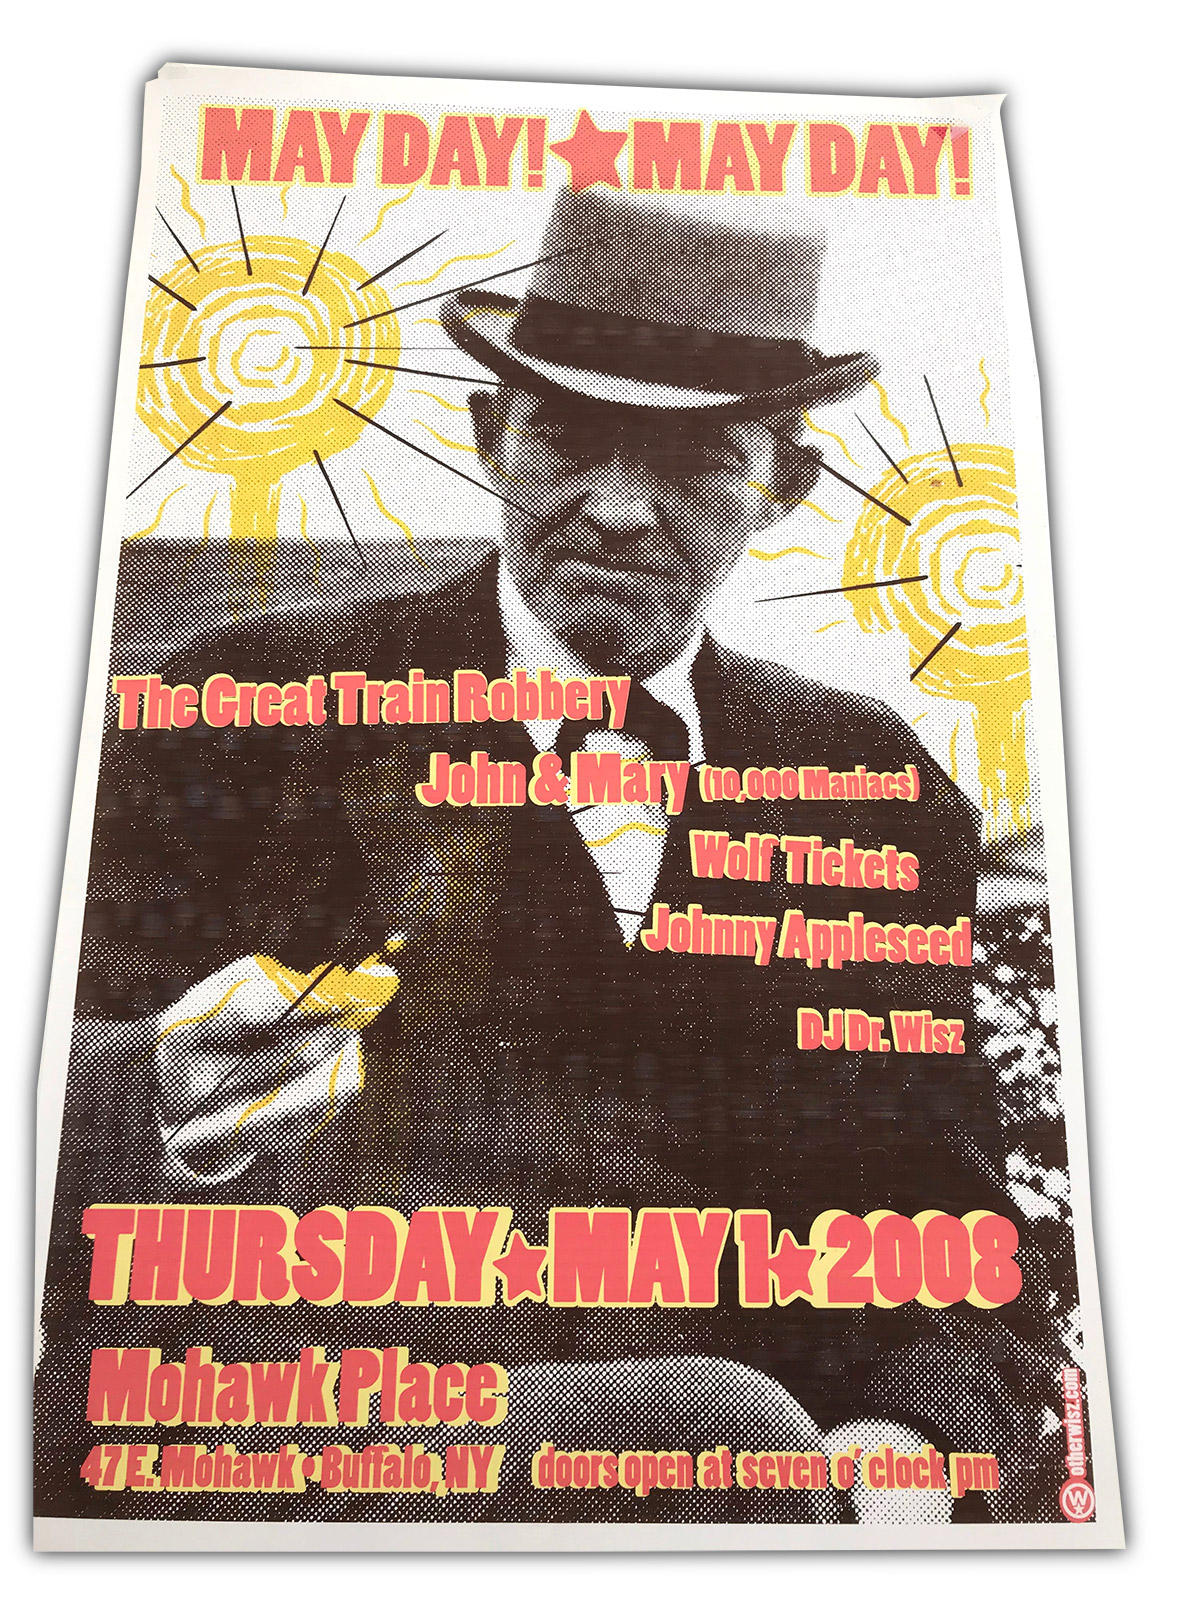 may day, buffalo, ny, poster design, rock poster, dj dr wisz, great train robbery, wolf tickets, mohawk place